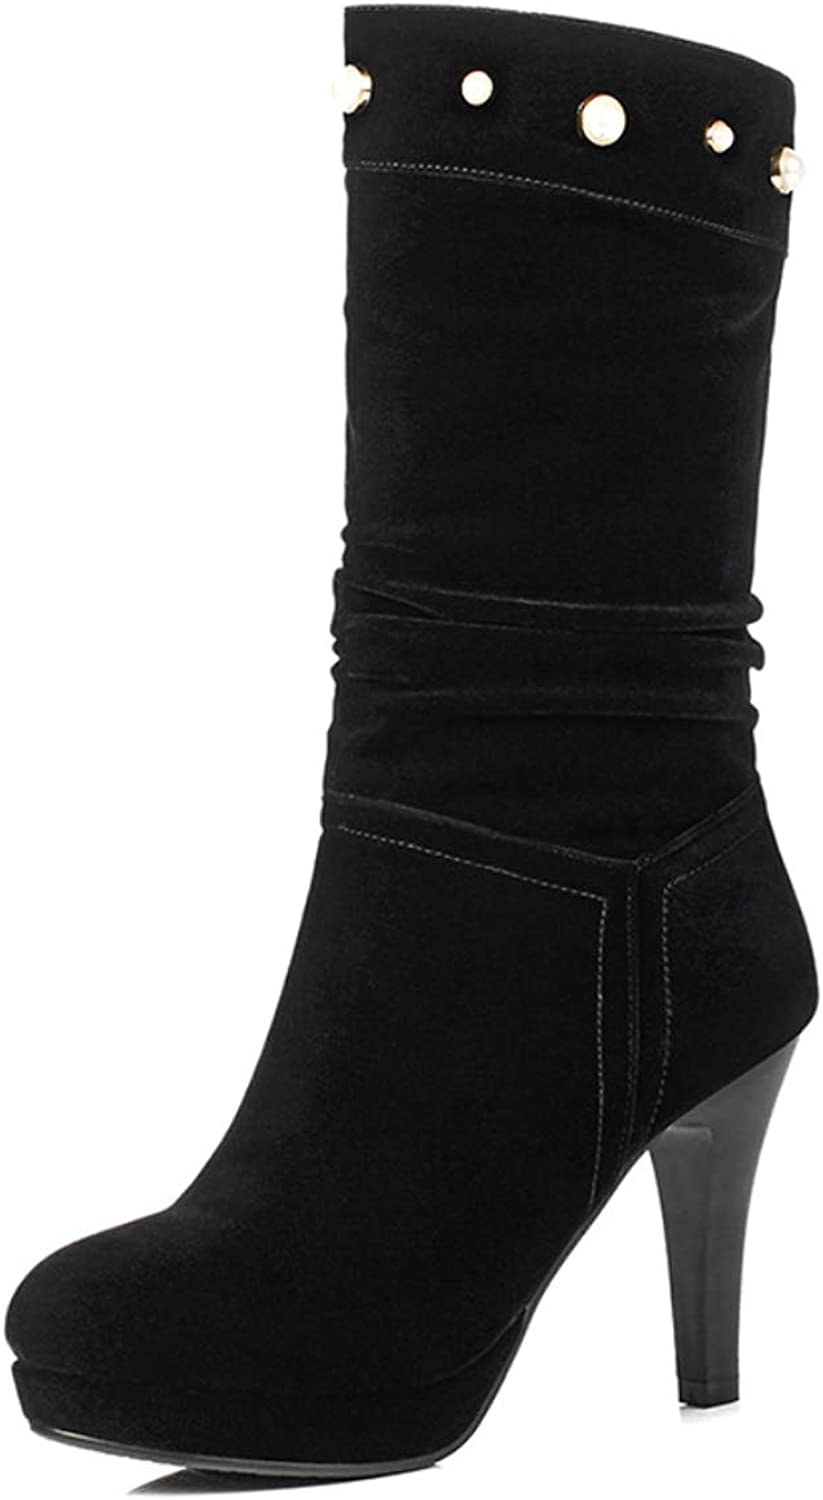 Womens Boot Mid Calf Boots High Heel Round Toe Party Suede shoes Size for Fall Winter